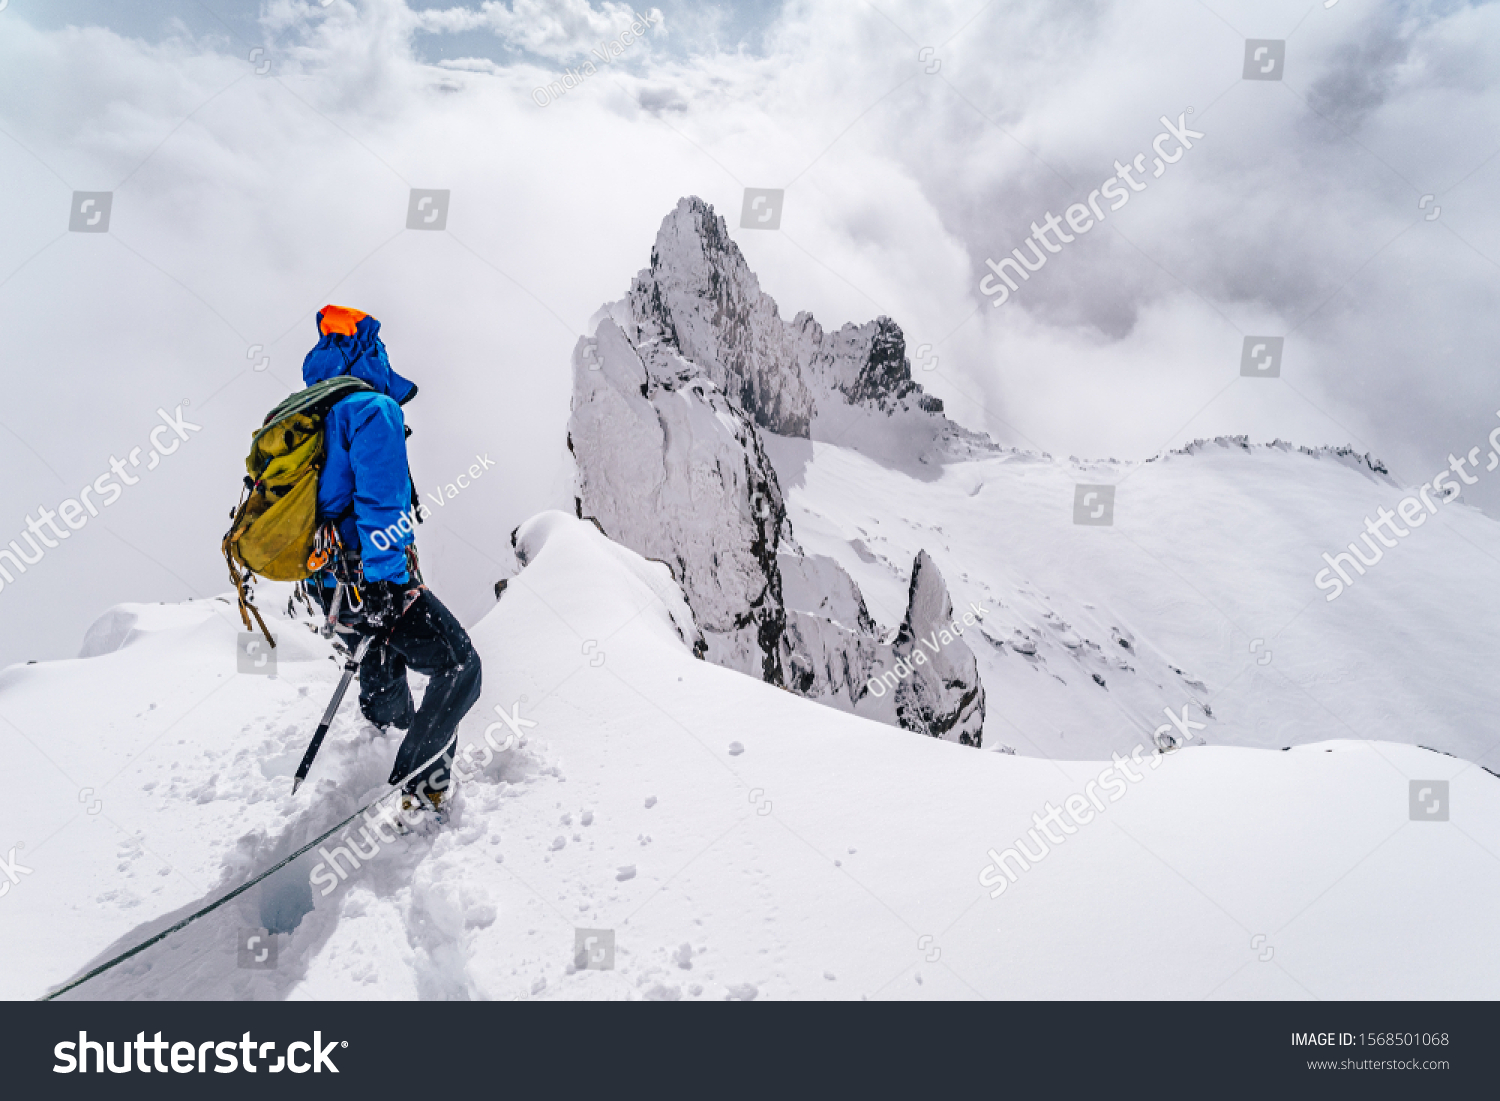 An alpinist climbing an alpine ridge in winter extreme conditions. Adventure ascent of alpine peak in snow and on rocks. Climber ascent to the summit. Winter ice and snow climbing in mountains. #1568501068